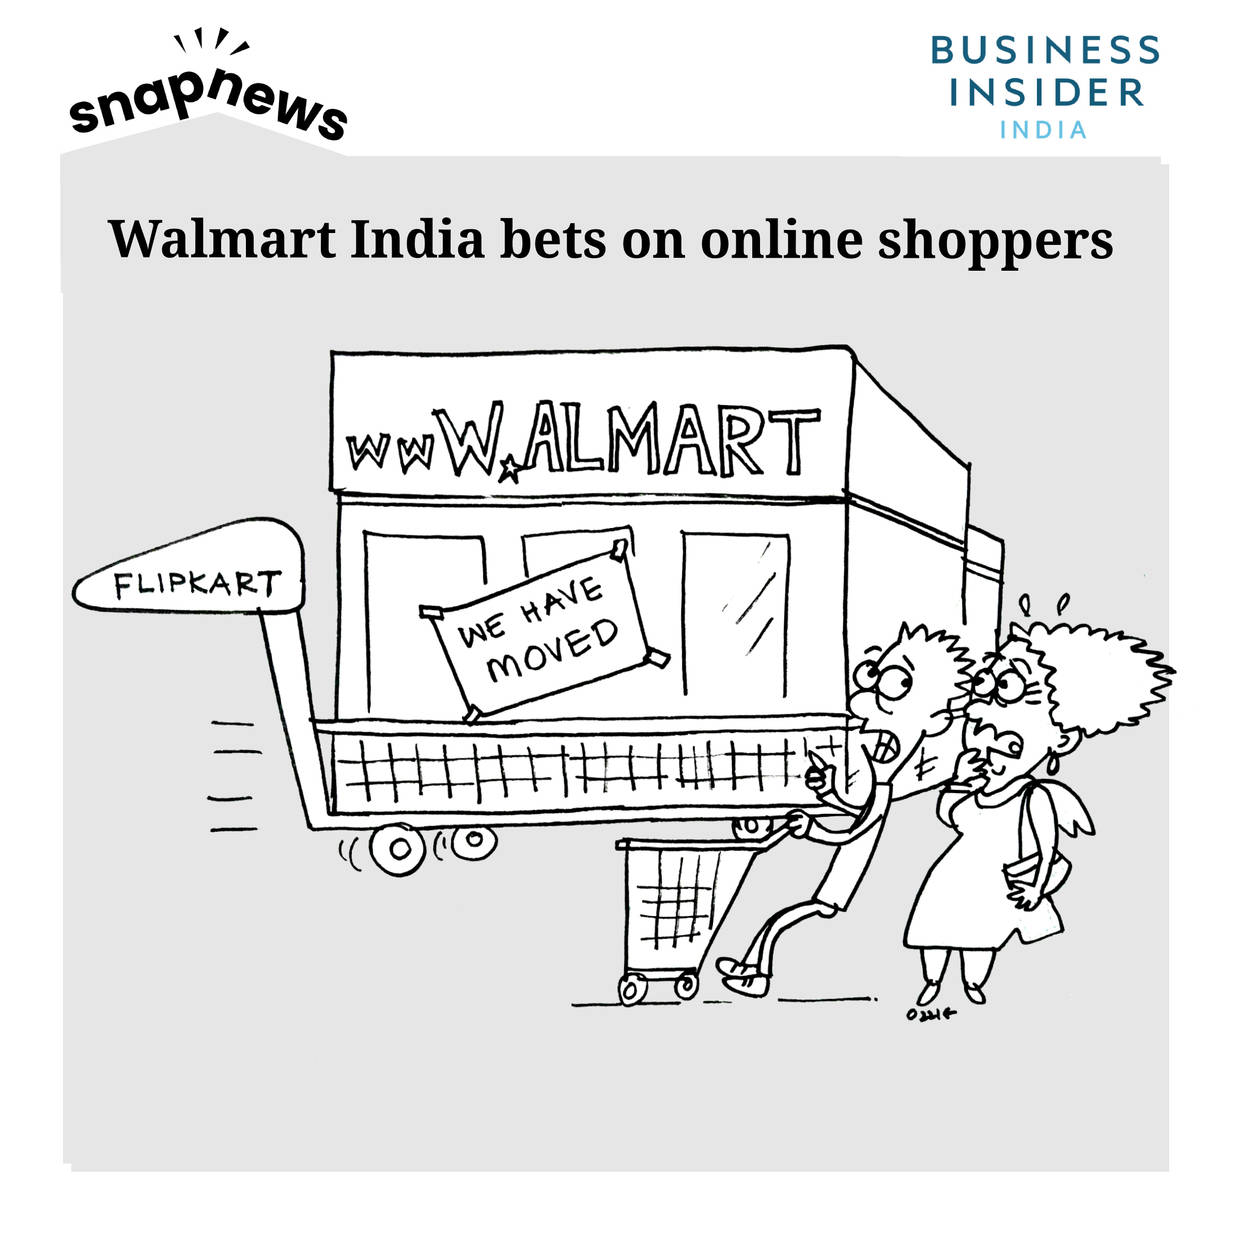 Walmart sheds brick and mortar weight as it plans to go online with Flipkart